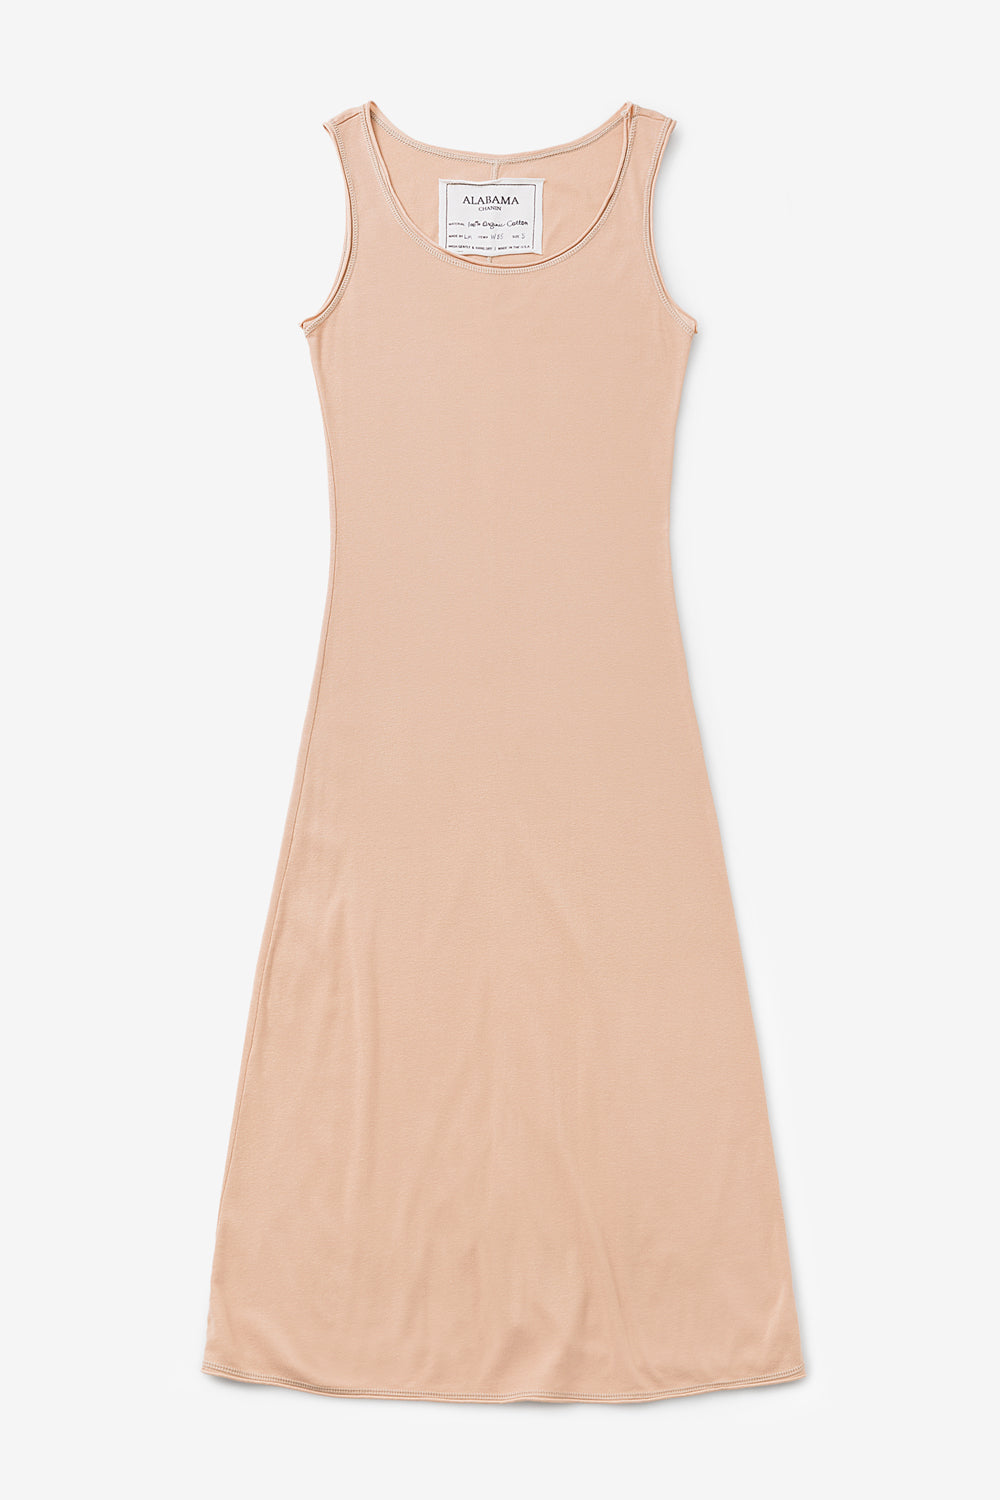 Alabama Chanin The Slip Dress Organic Cotton Fitted Dress in Vetiver Soft Rib Knit